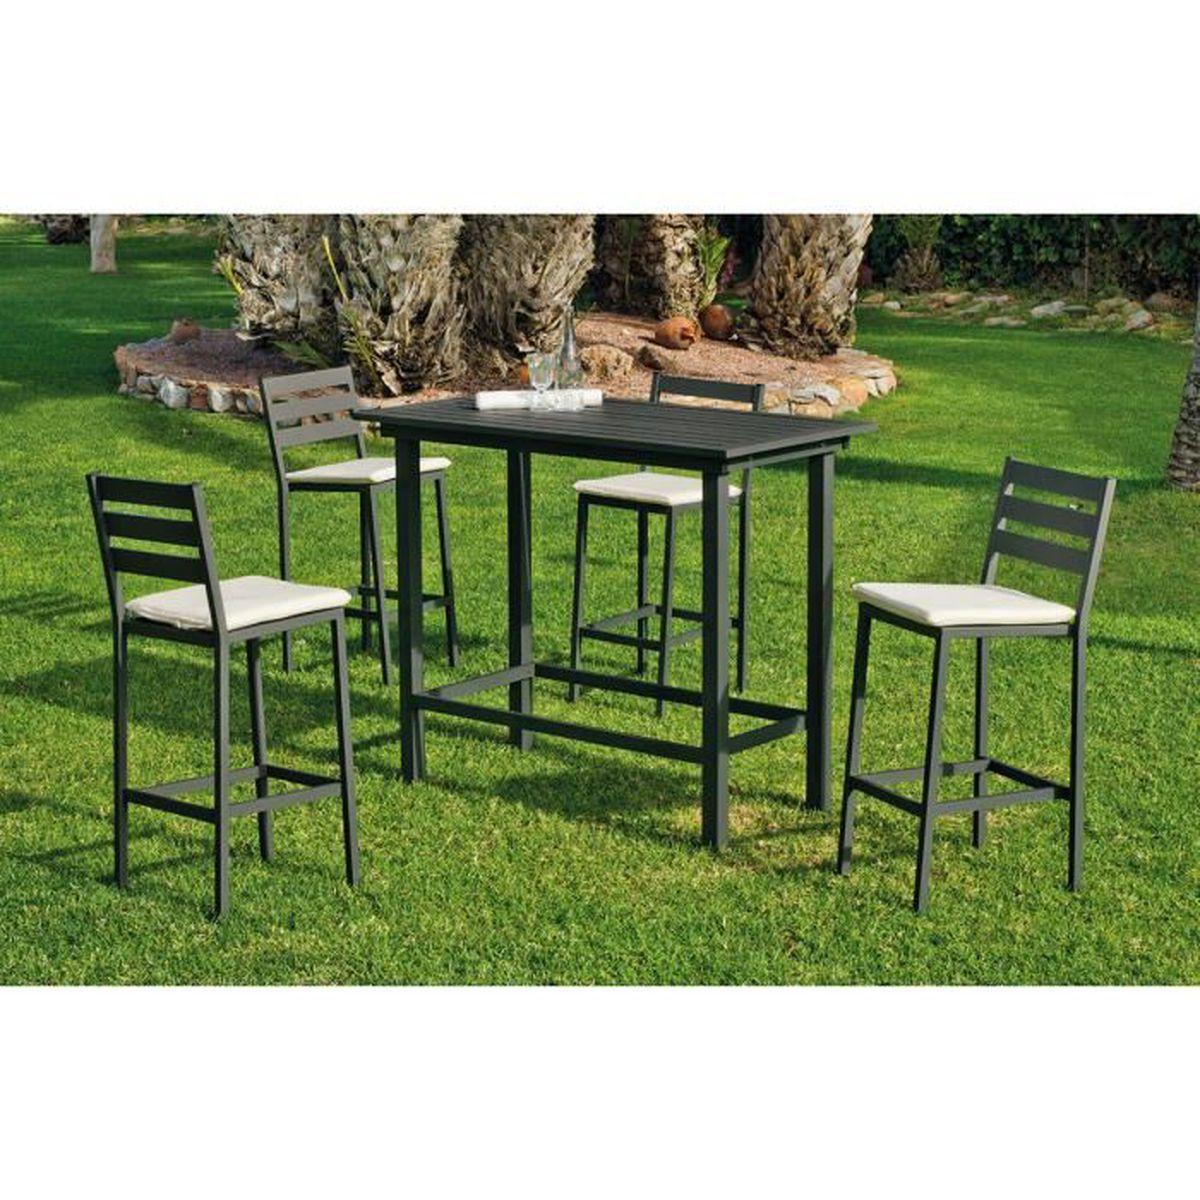 Ensemble de Jardin Galicia 1 Table Bar + 4 Chaises Hautes Anthracite